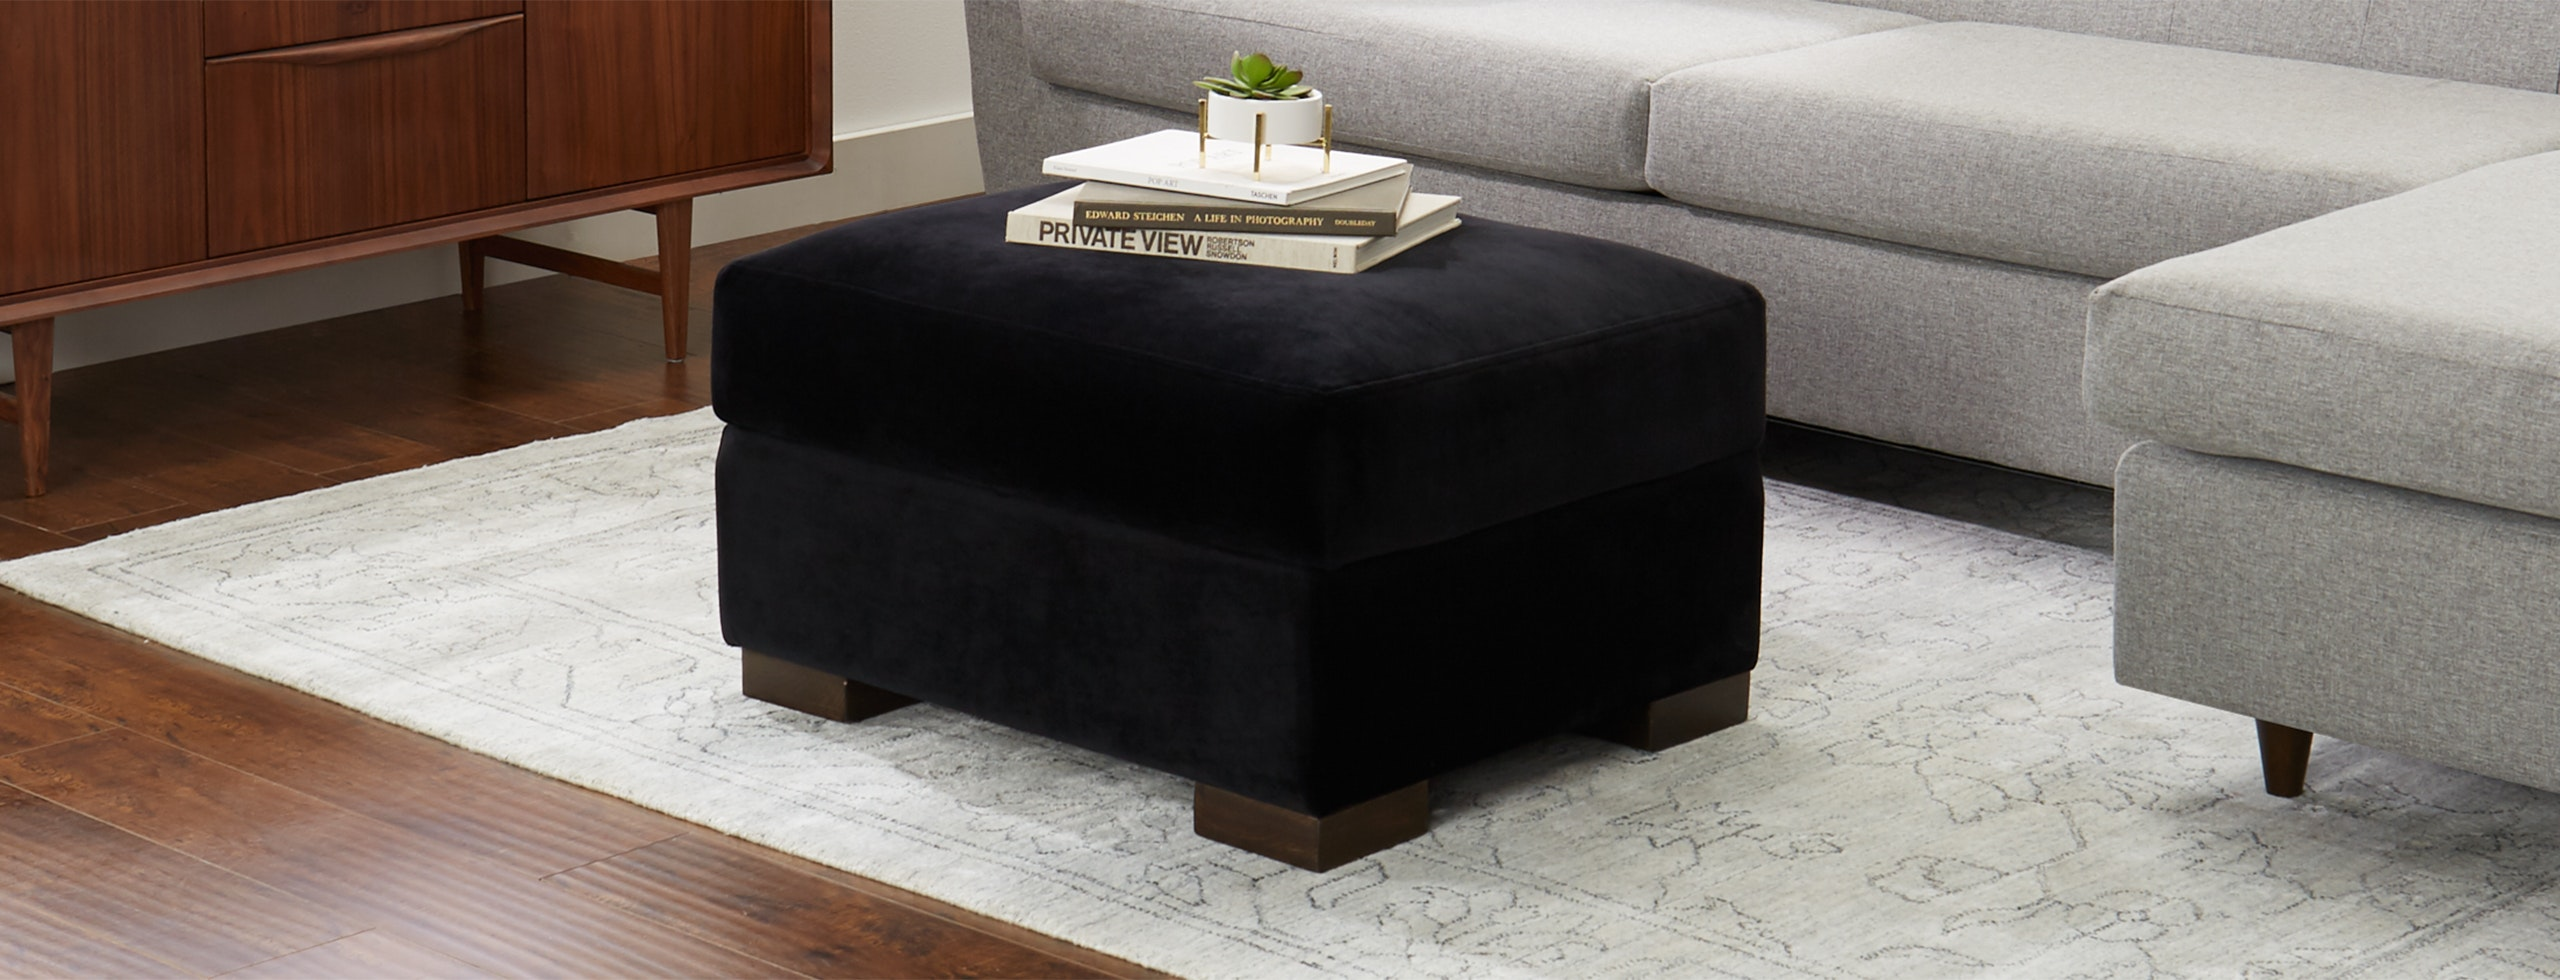 anton storage ott joybird royale onyx wood accent table main gallery rust colored placemats garden chairs party cloth small end tables from pier one imports nautical pendant